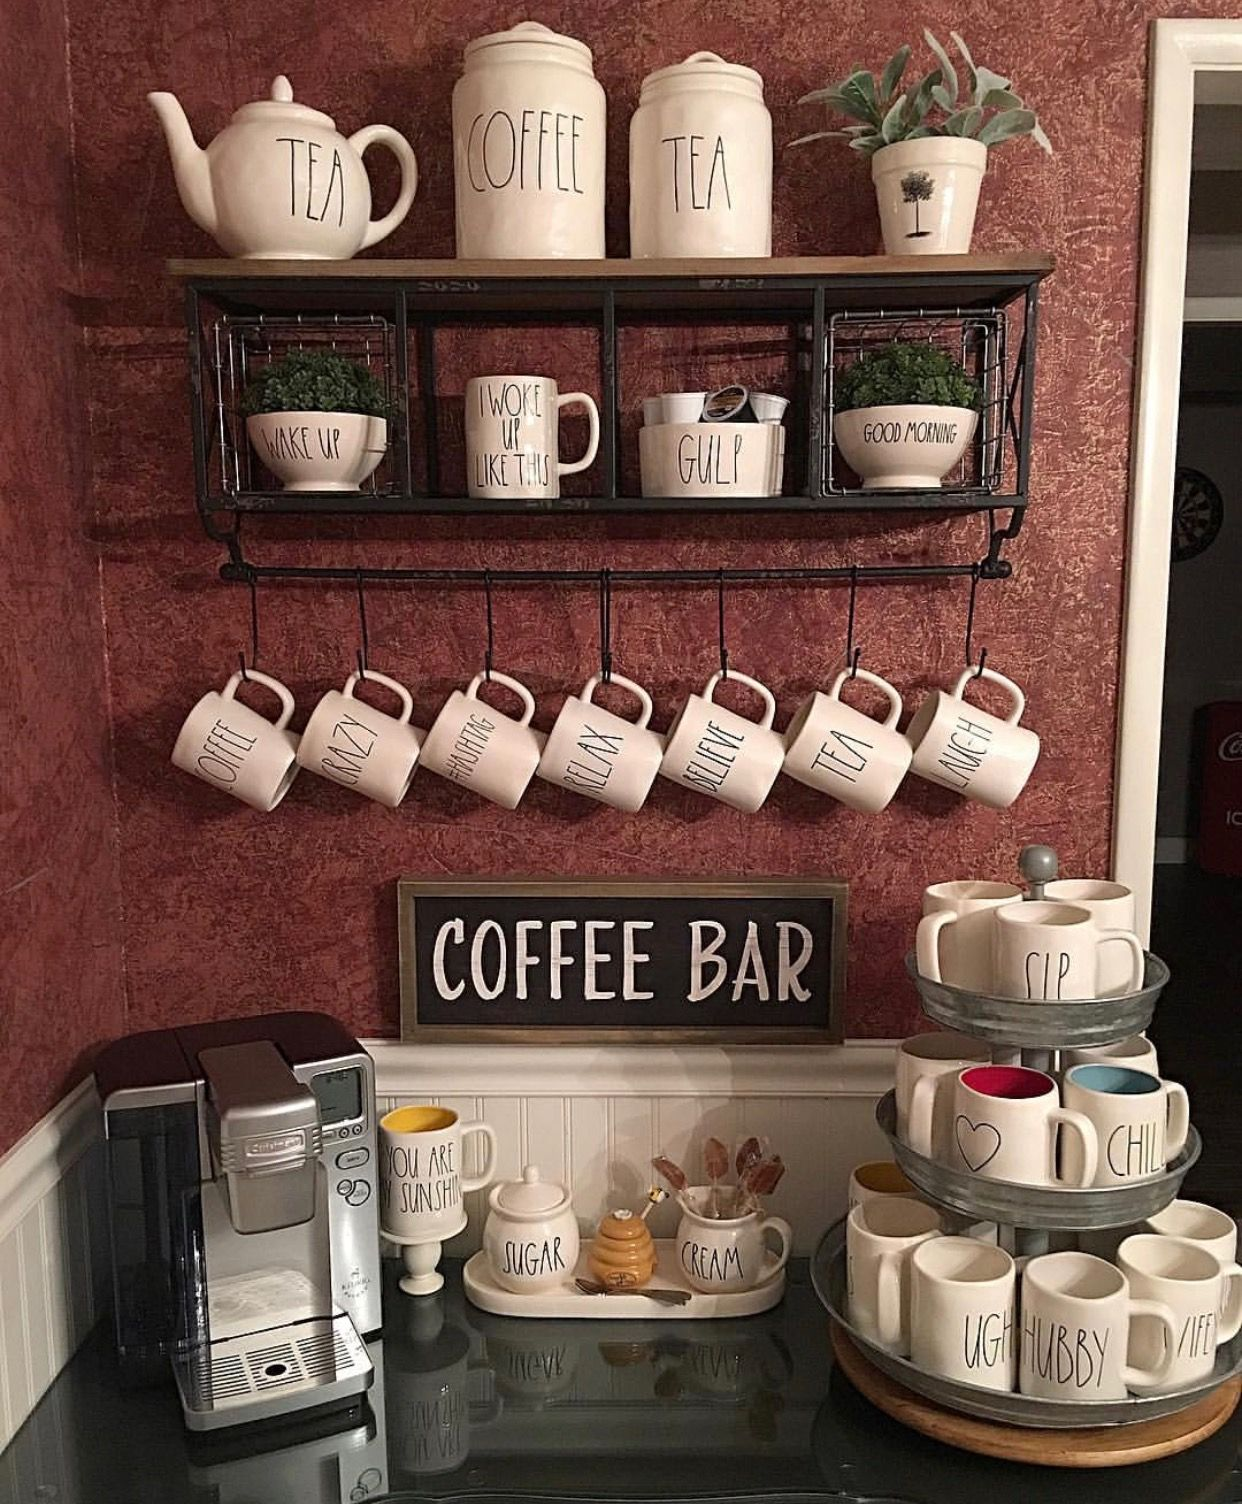 Coffee Bar Ideas Great Ideas For Making Your Own Coffee Bar At Home This Post Is All About Coffee Bar Furniture Coffee Bar Design Coffee Bar Coffee Bar Home